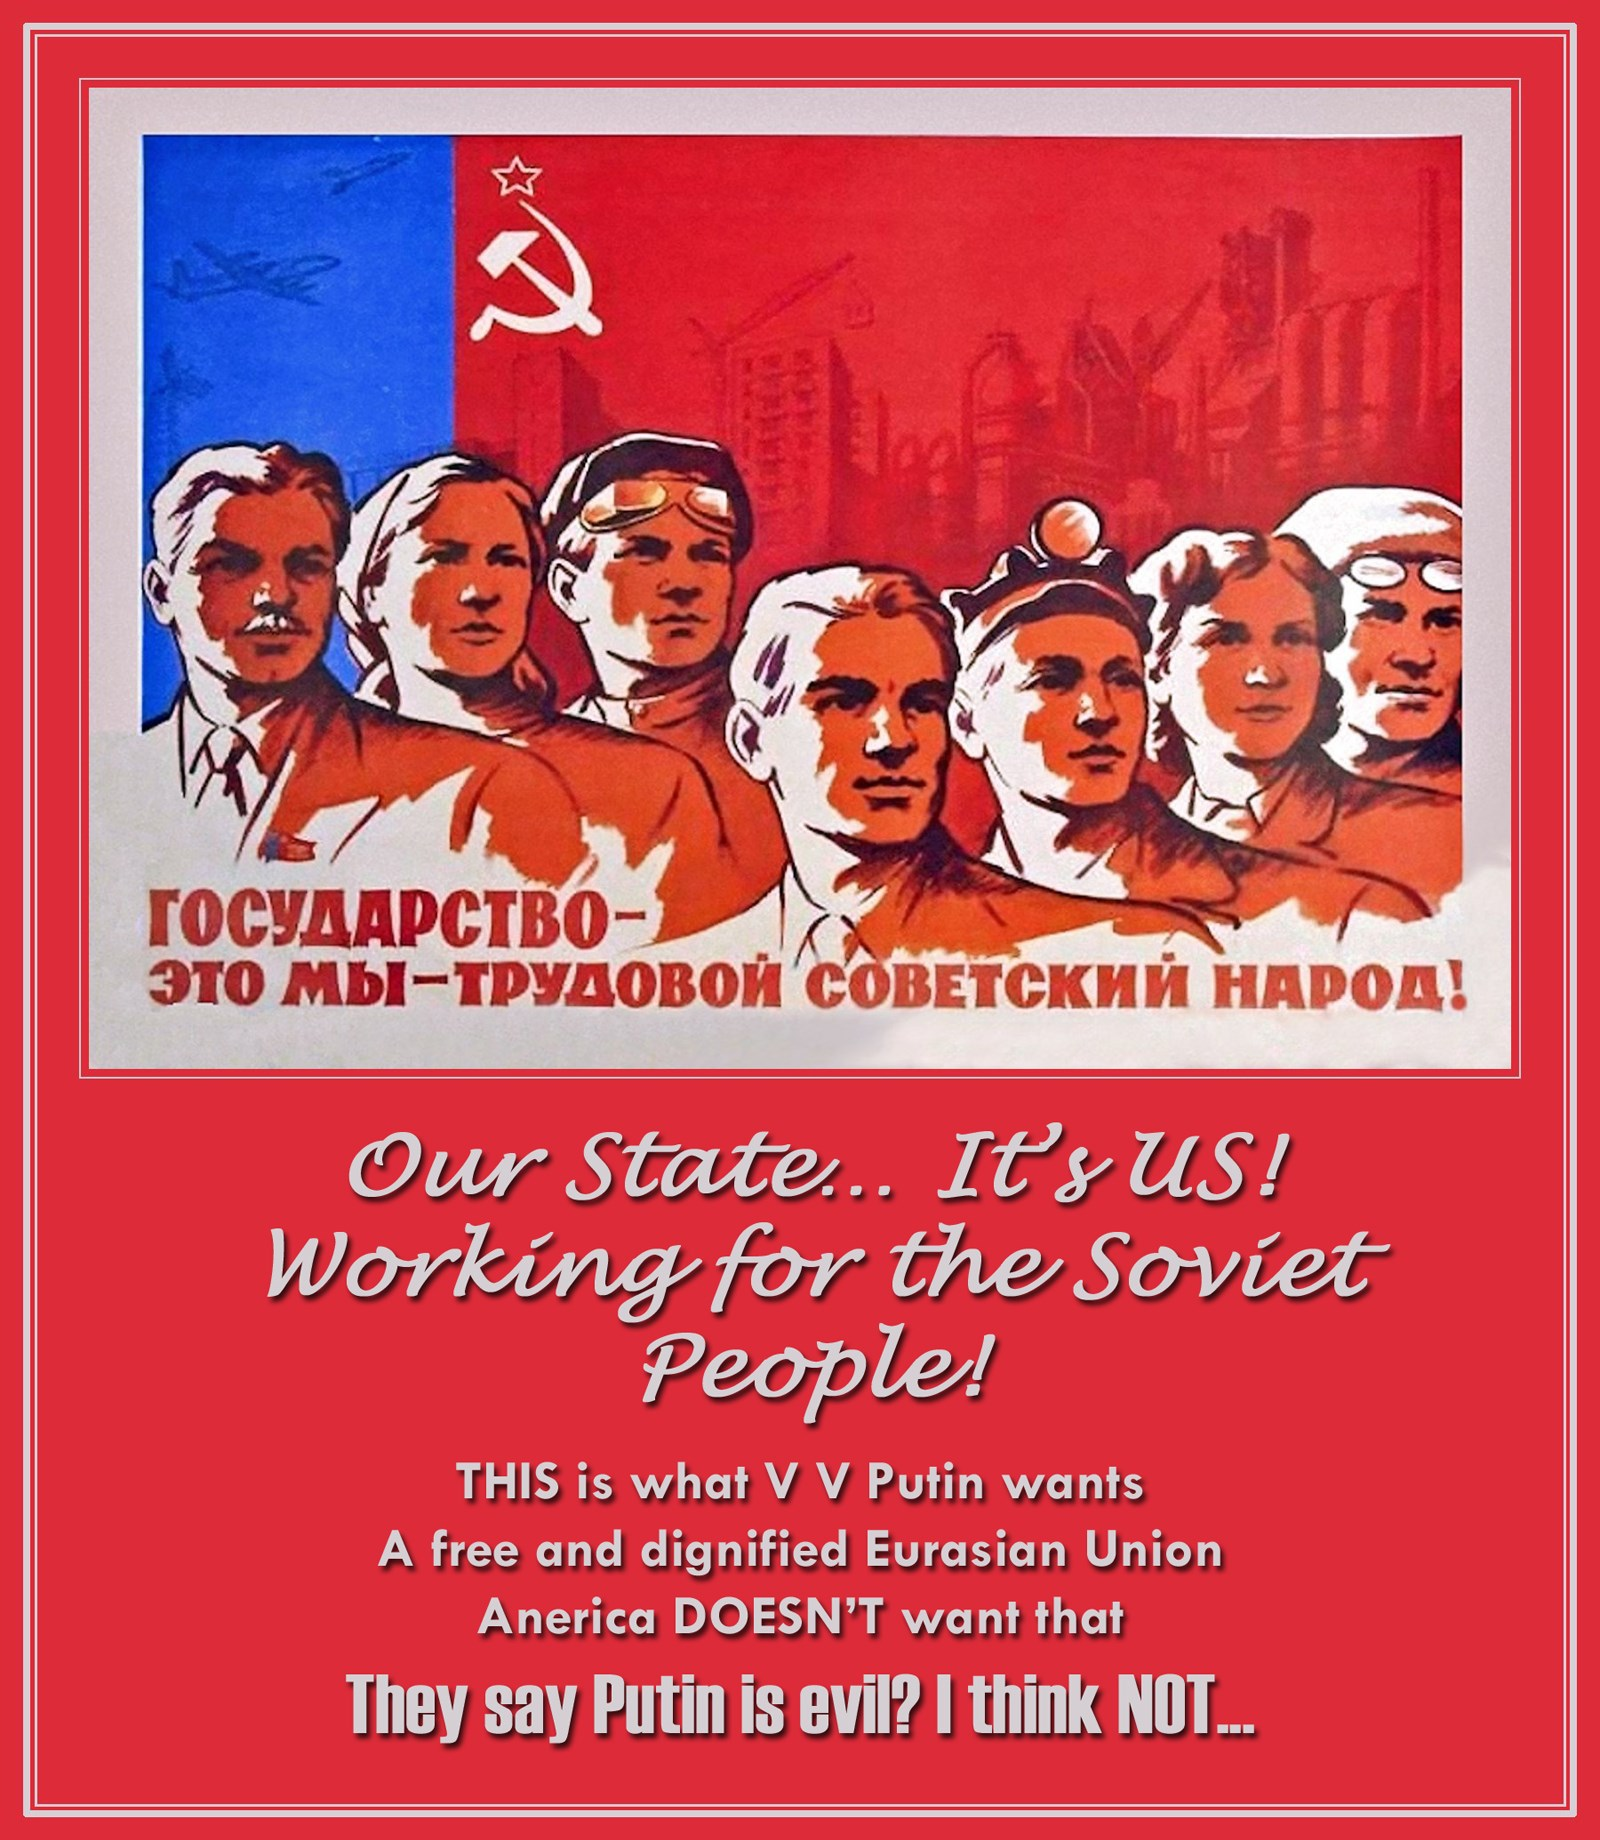 00 Work for the Soviet People! 04.04.15